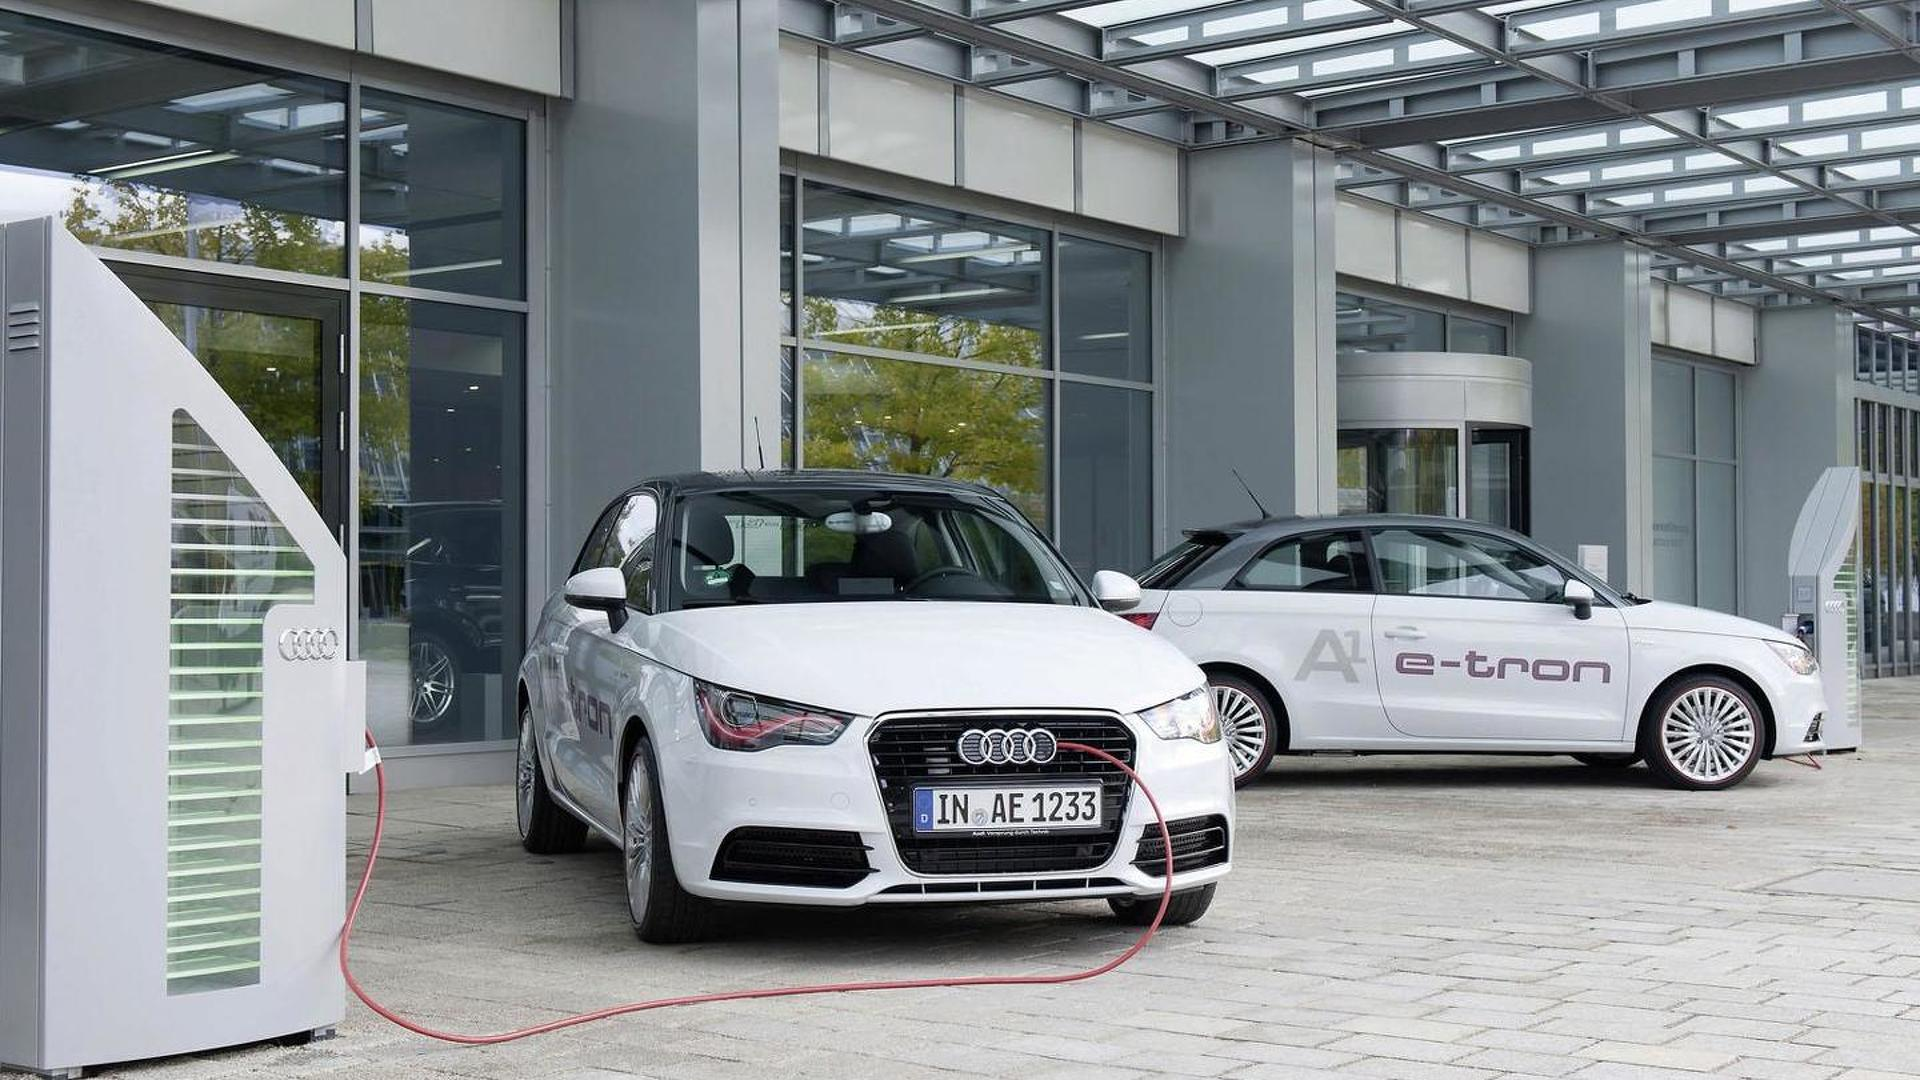 Audi introduces an updated A1 e-Tron